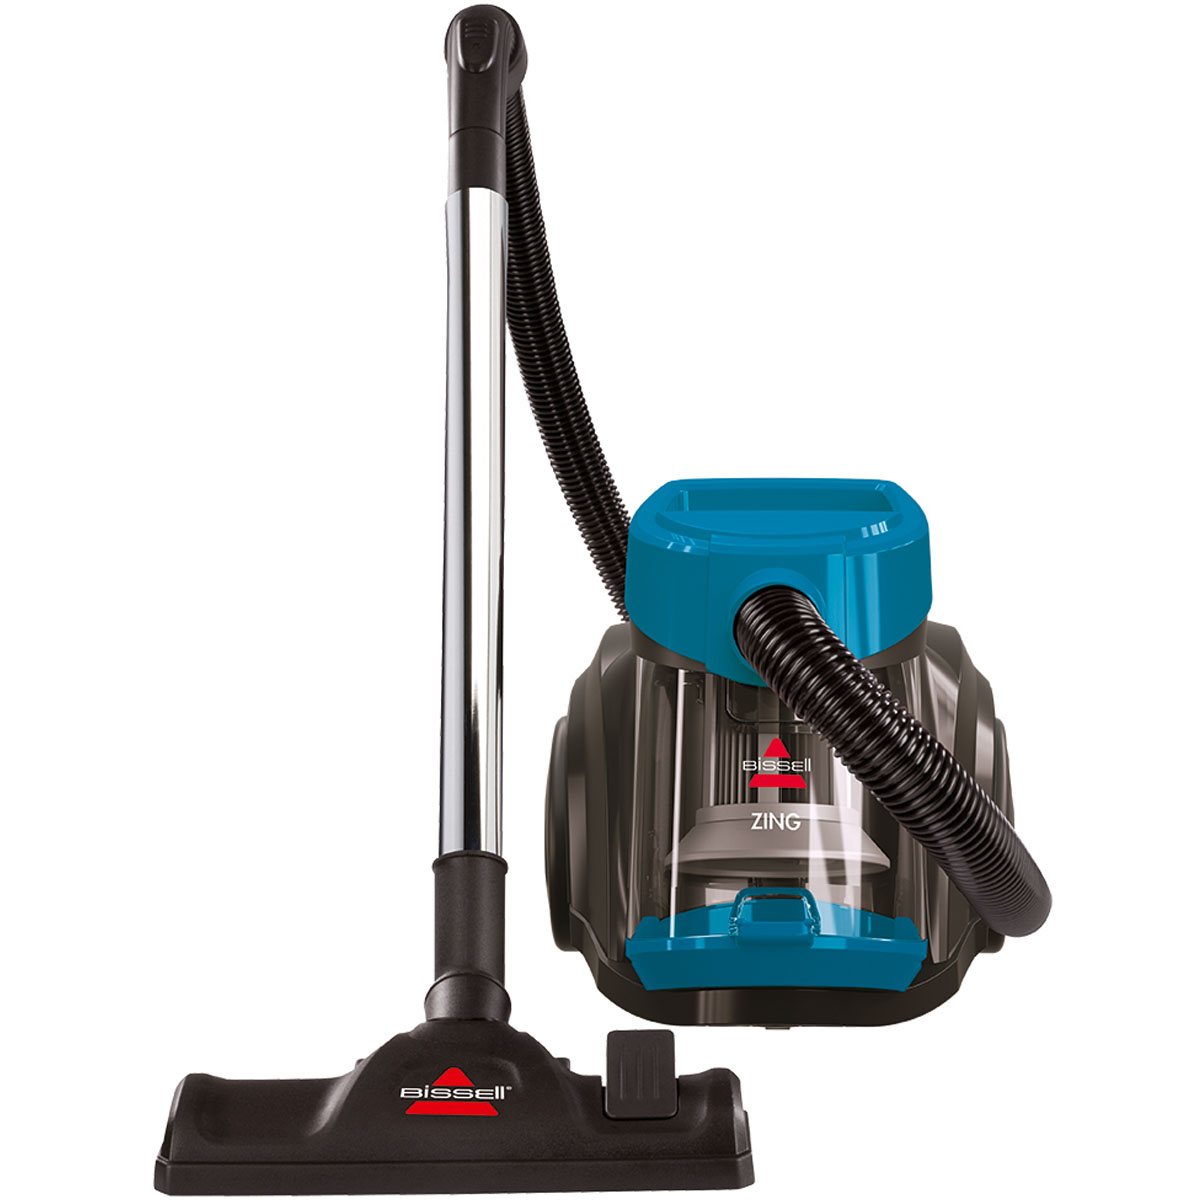 Bissel 1669U Bagless Vacuum Cleaner